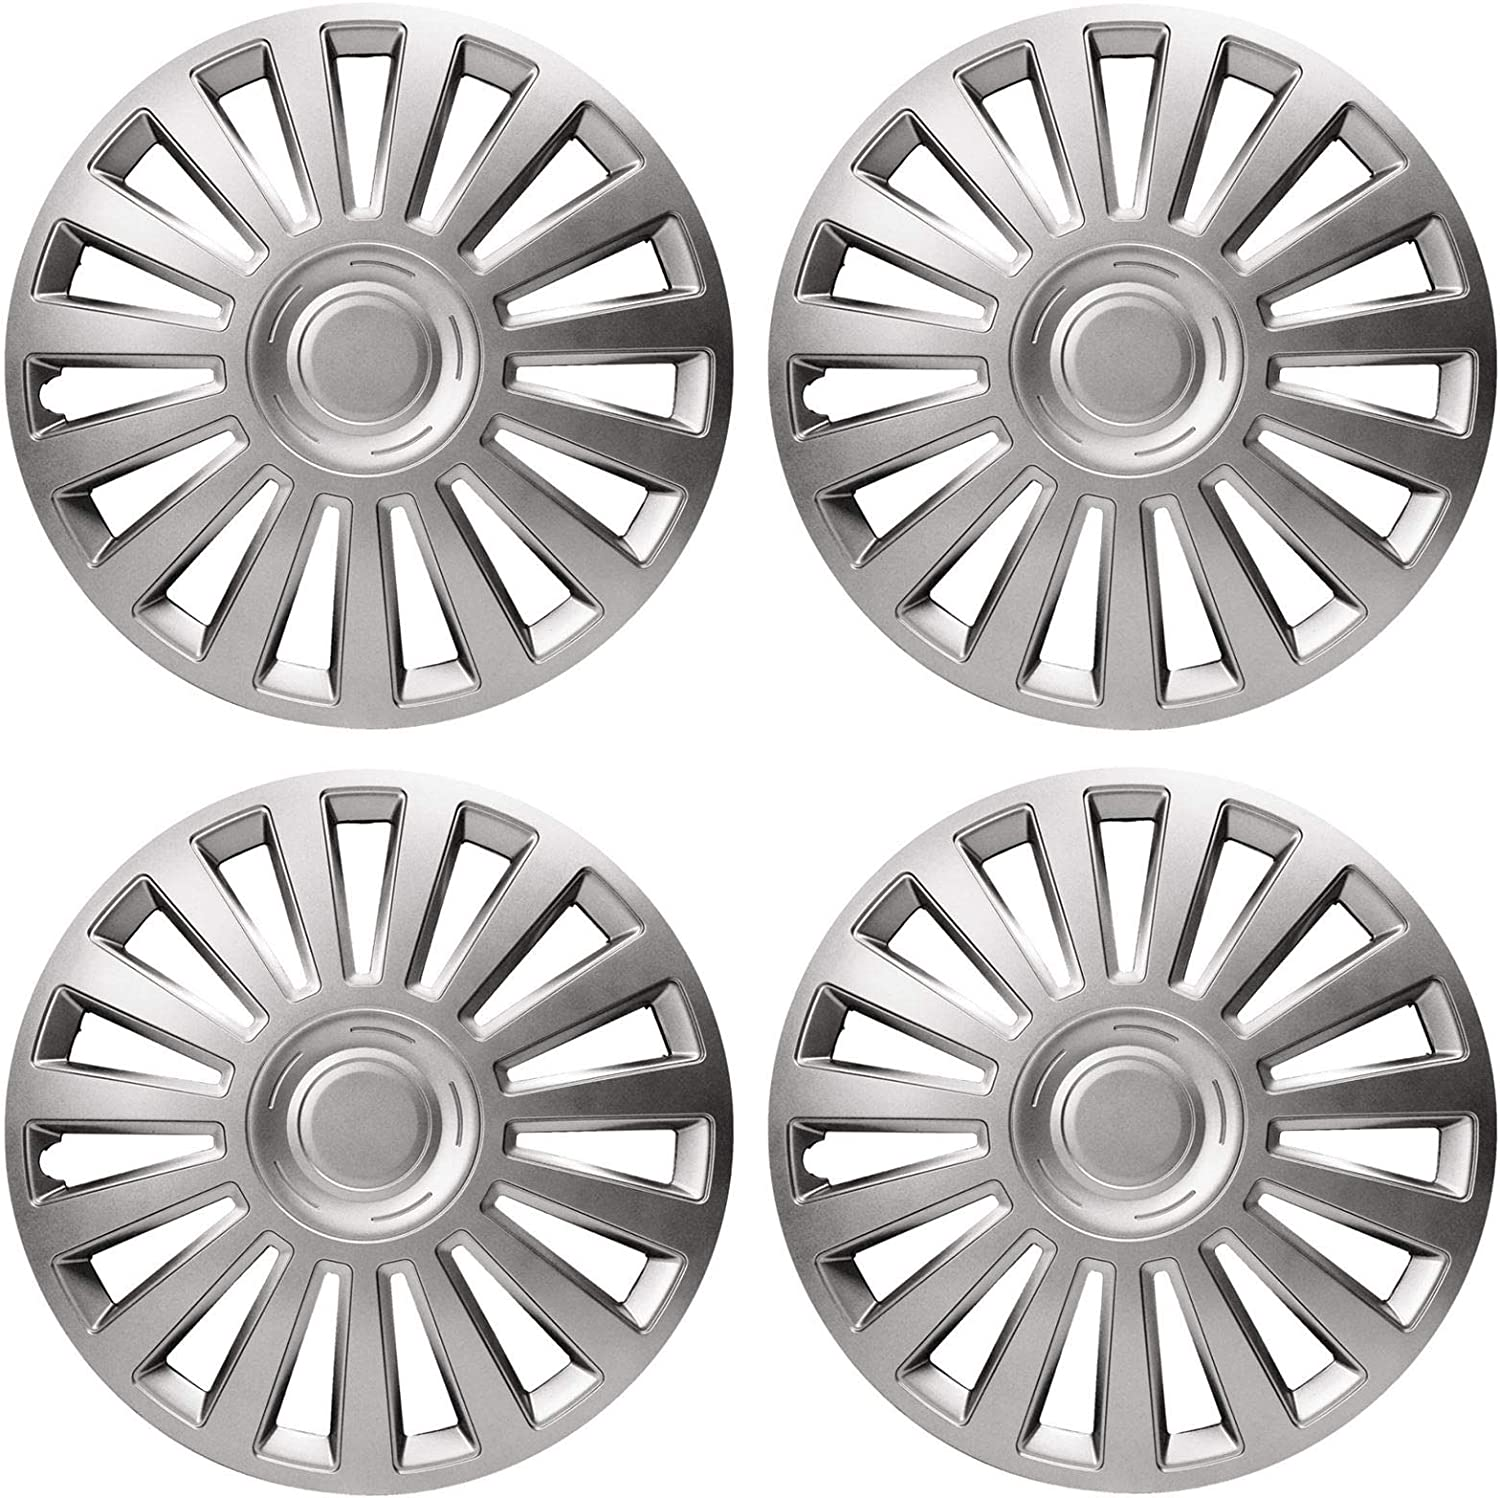 UKB4C 4 x Wheel Trims Lux Hub Caps 16 Covers fits Dacia Sandero